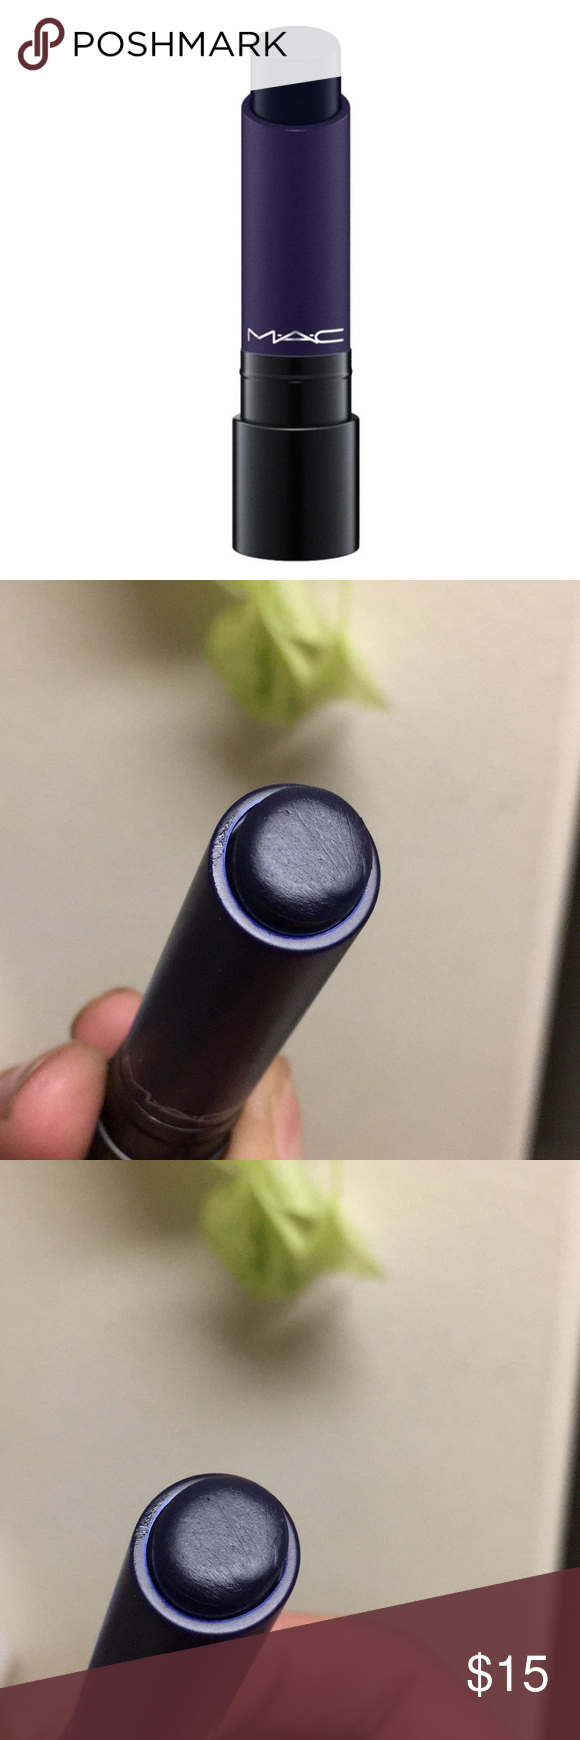 mac liptensity lipstick brand new, in package. authentic